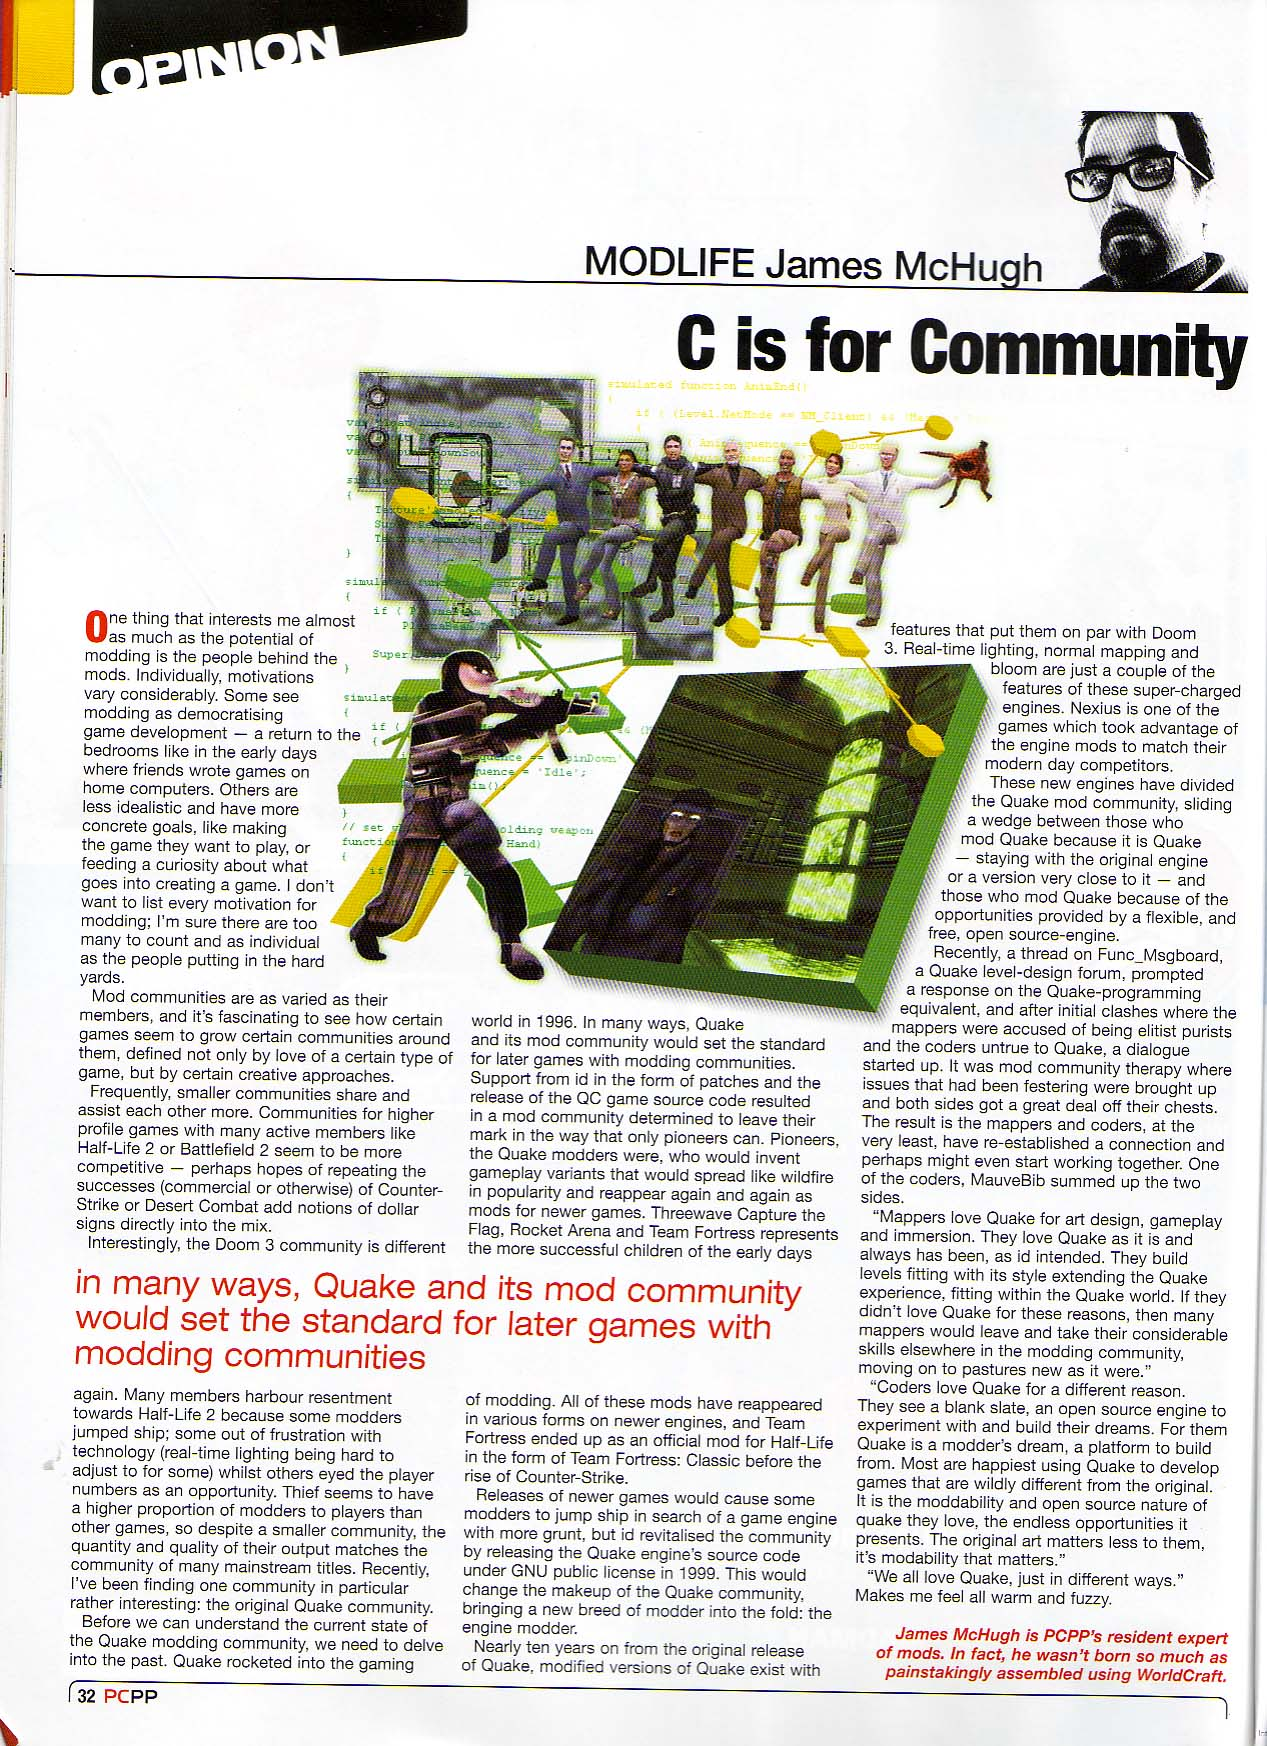 Func Msgboard General Abuse Http Wwwtonydrewscom Killswitch2jpg Cant Remember Who Wanted To Look At It Now But Thats A Scan Out Of The Australian Magazine Pc Powerplay From Months Ago That Mentions Discussion